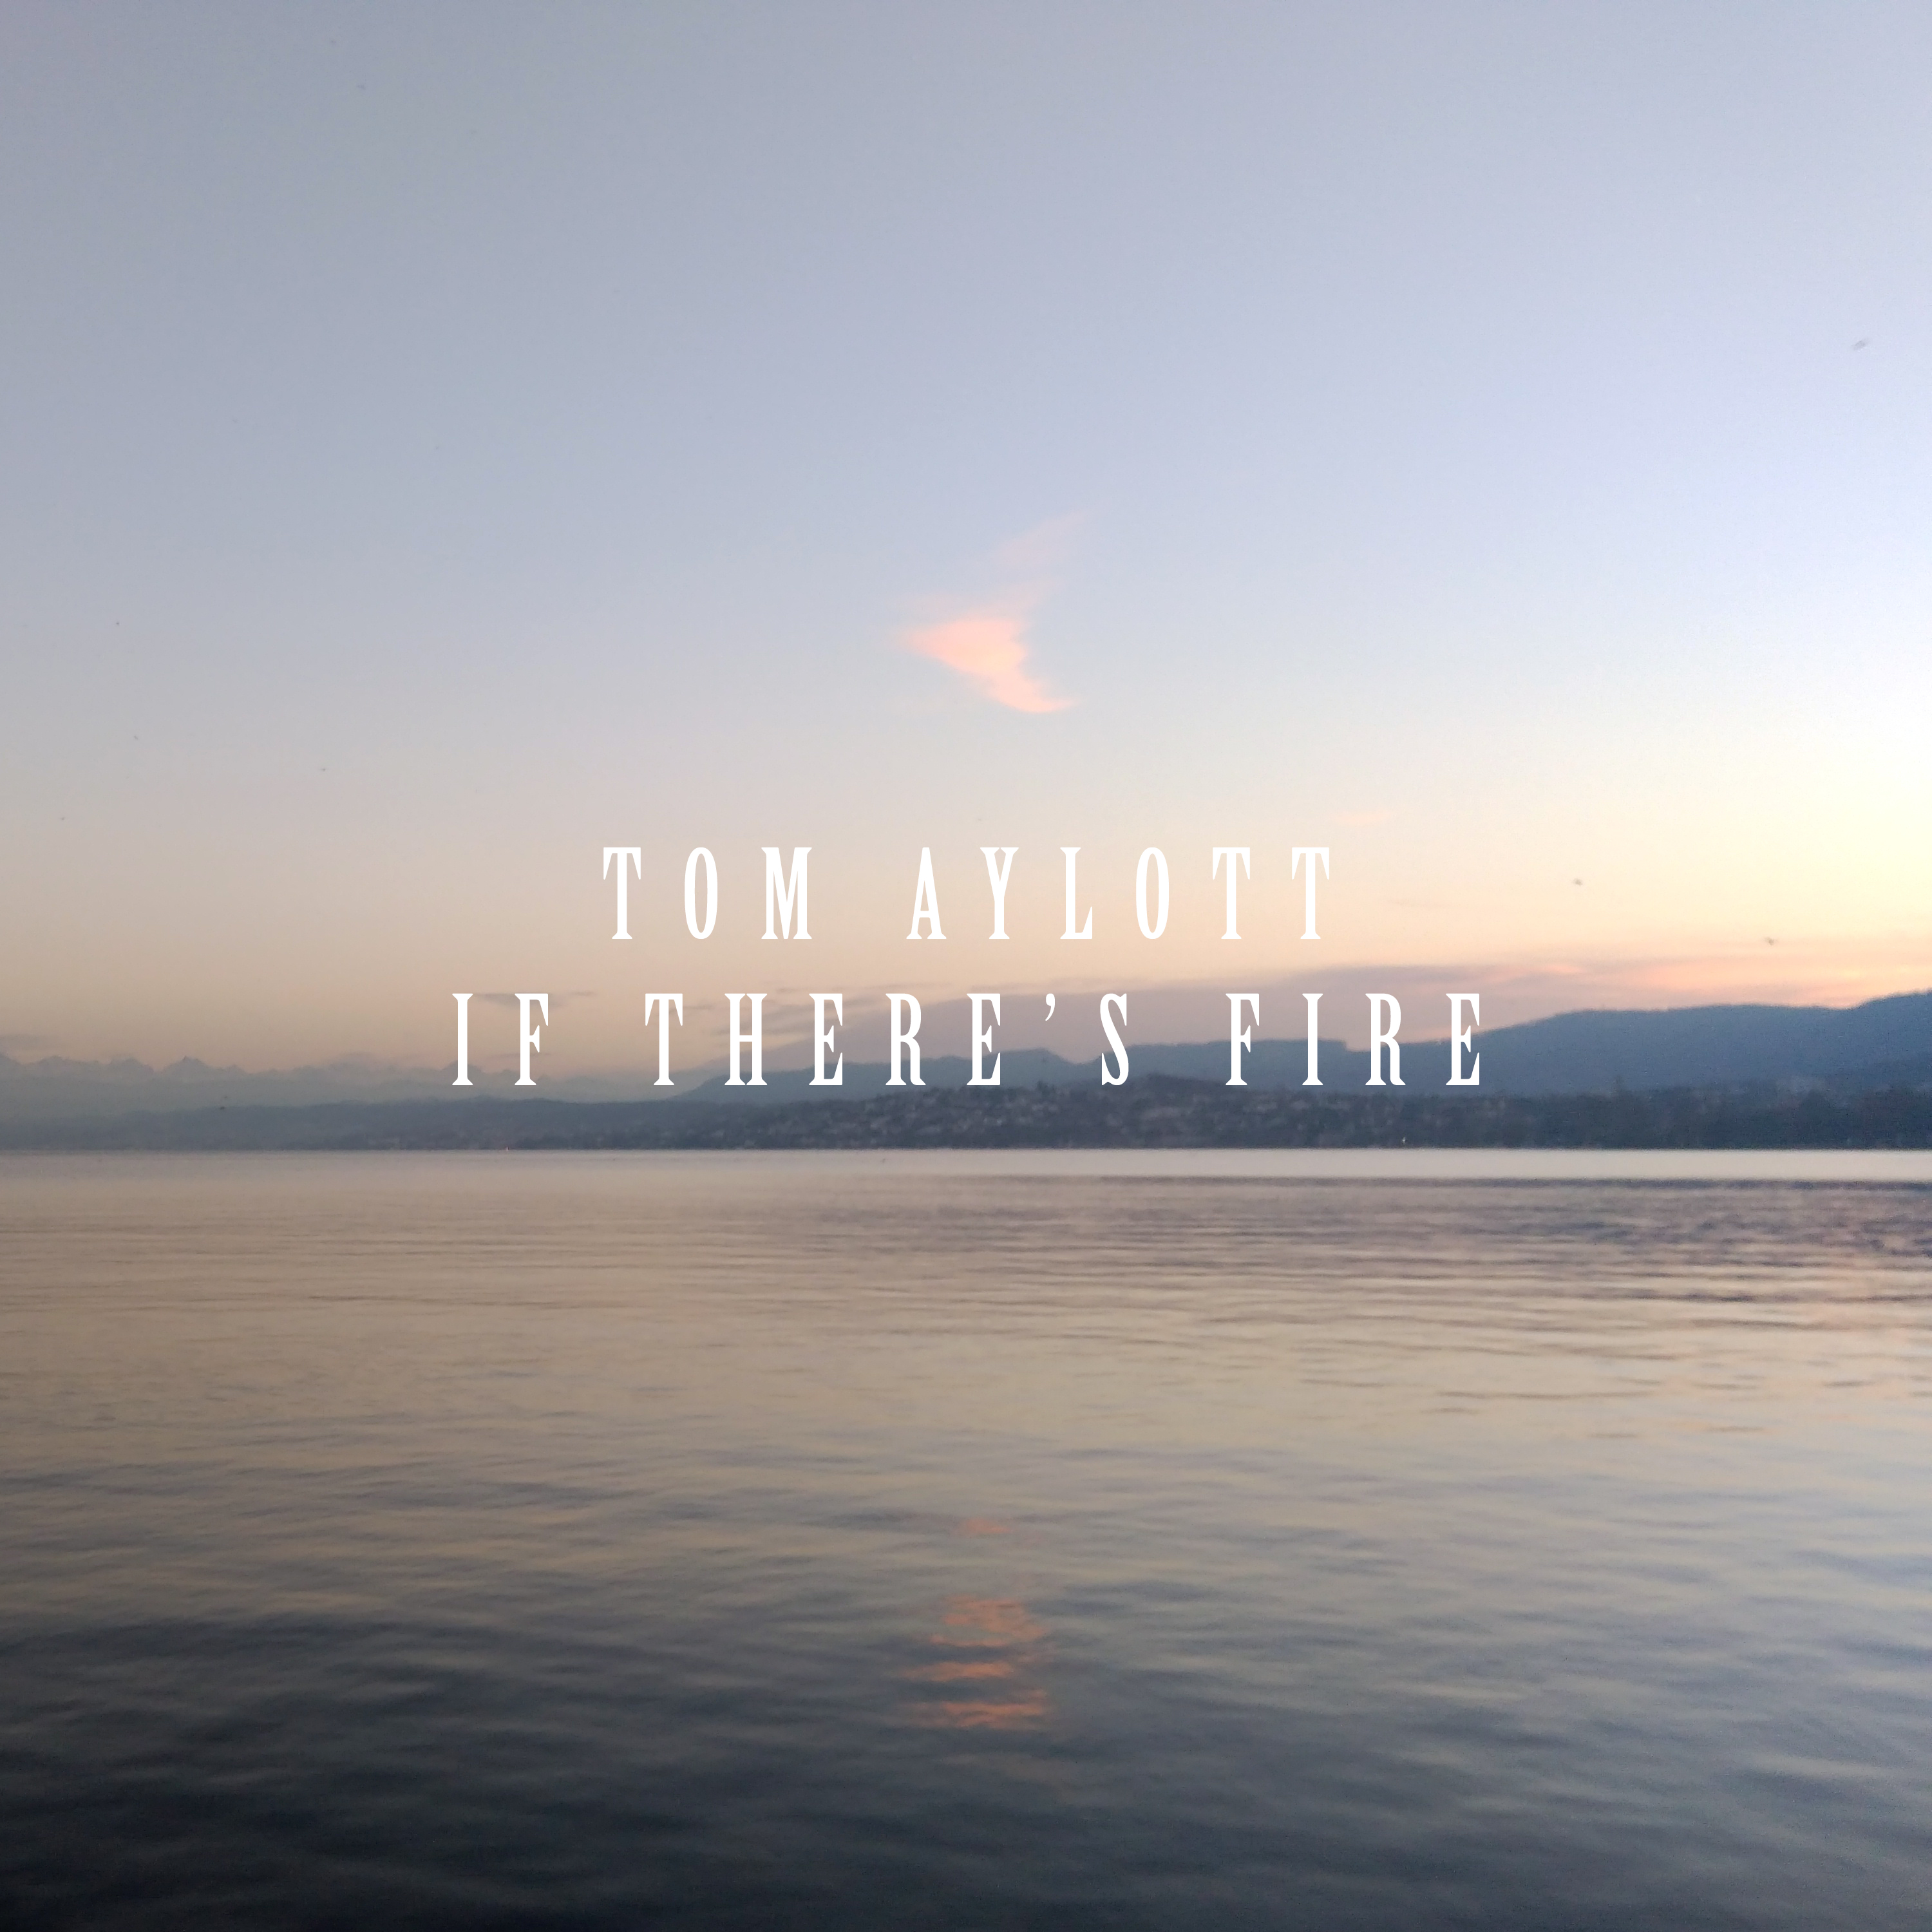 Tom Aylott - If There's Fire